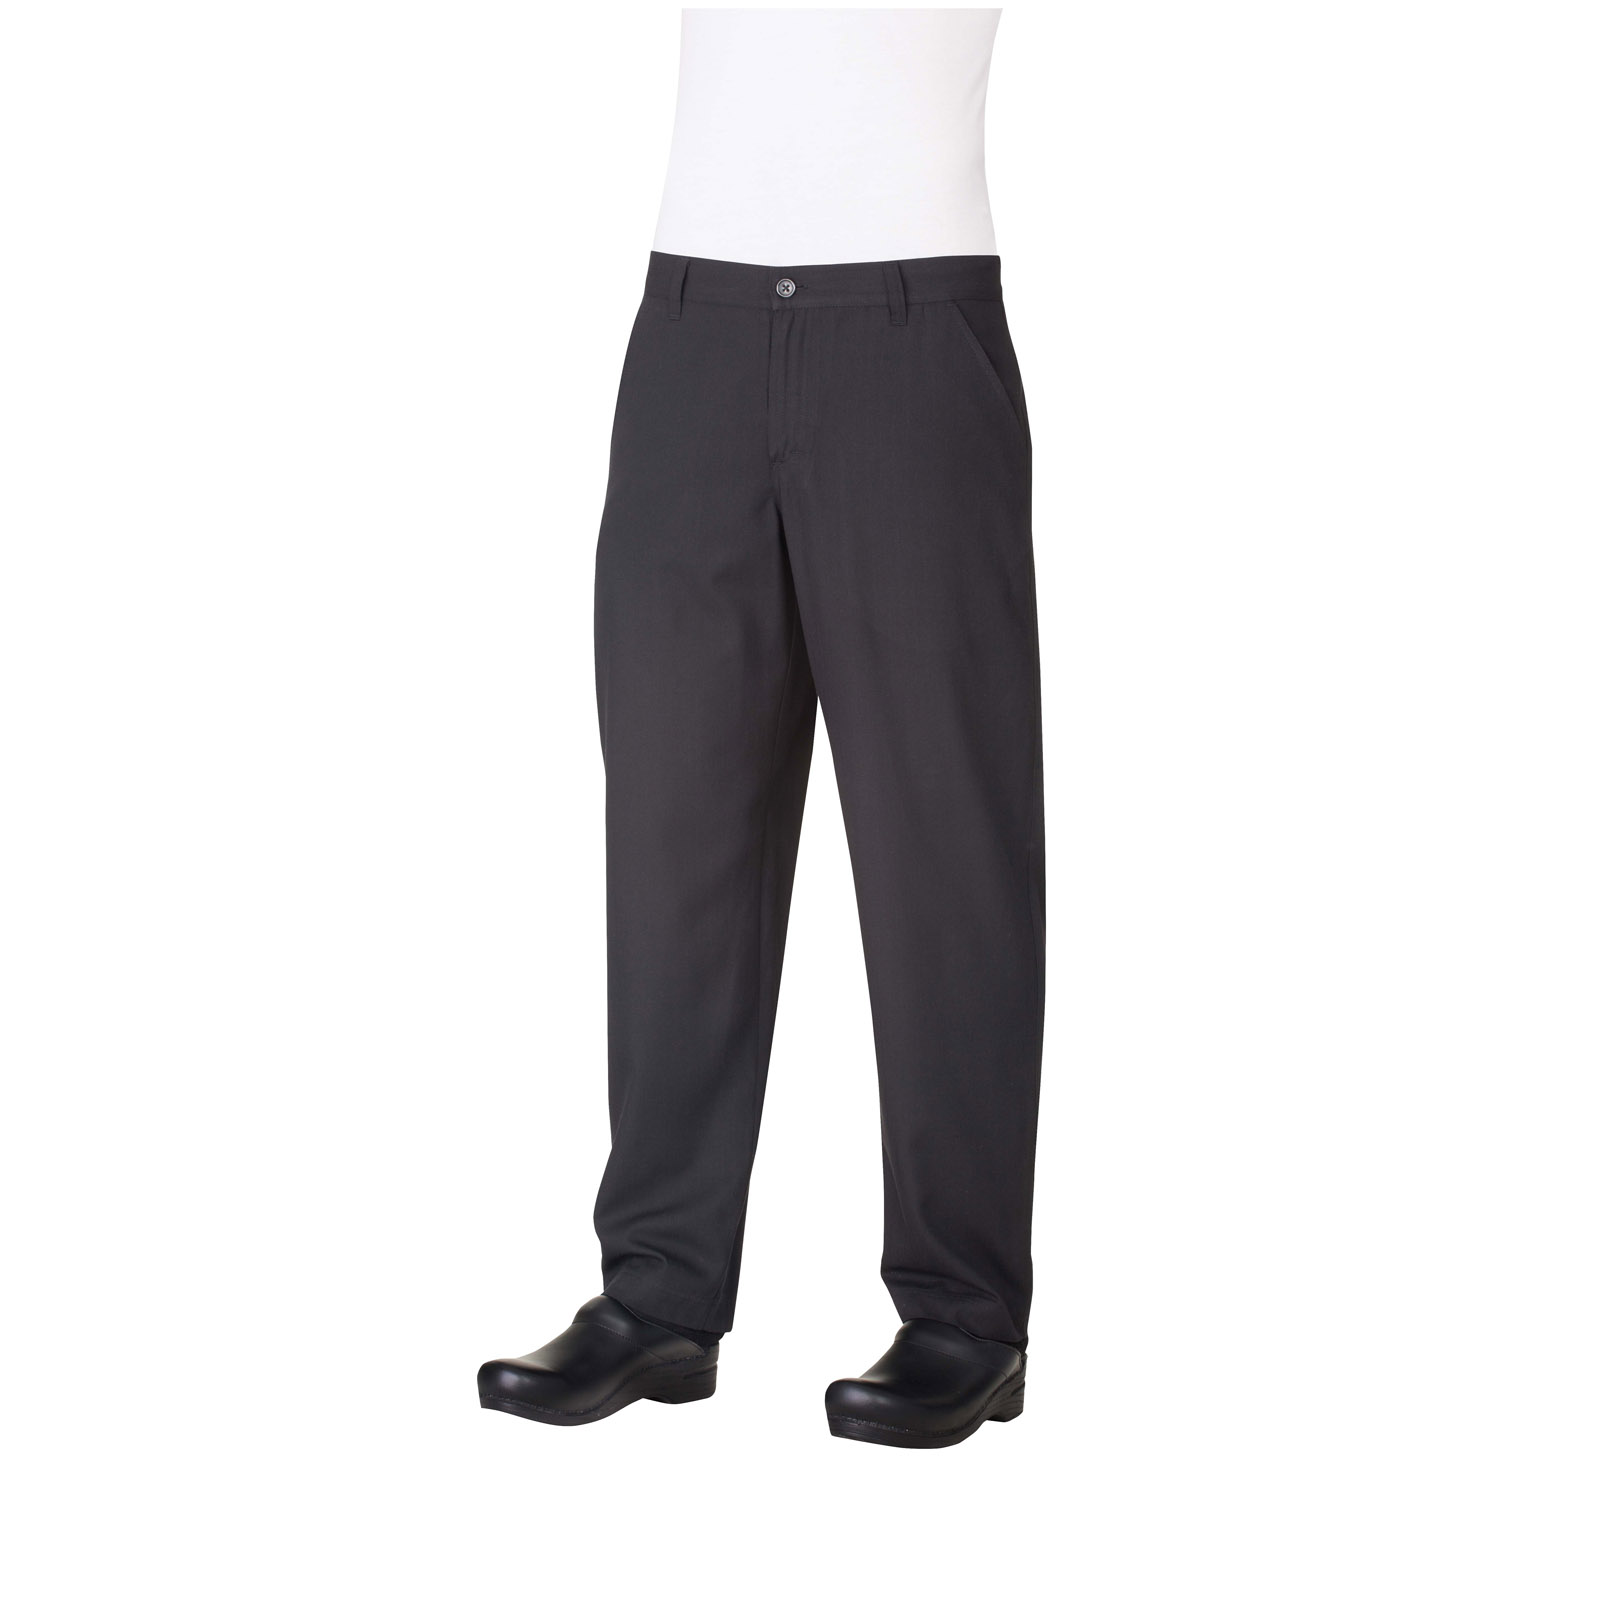 Chef Works PS003BLK28 chef's pants